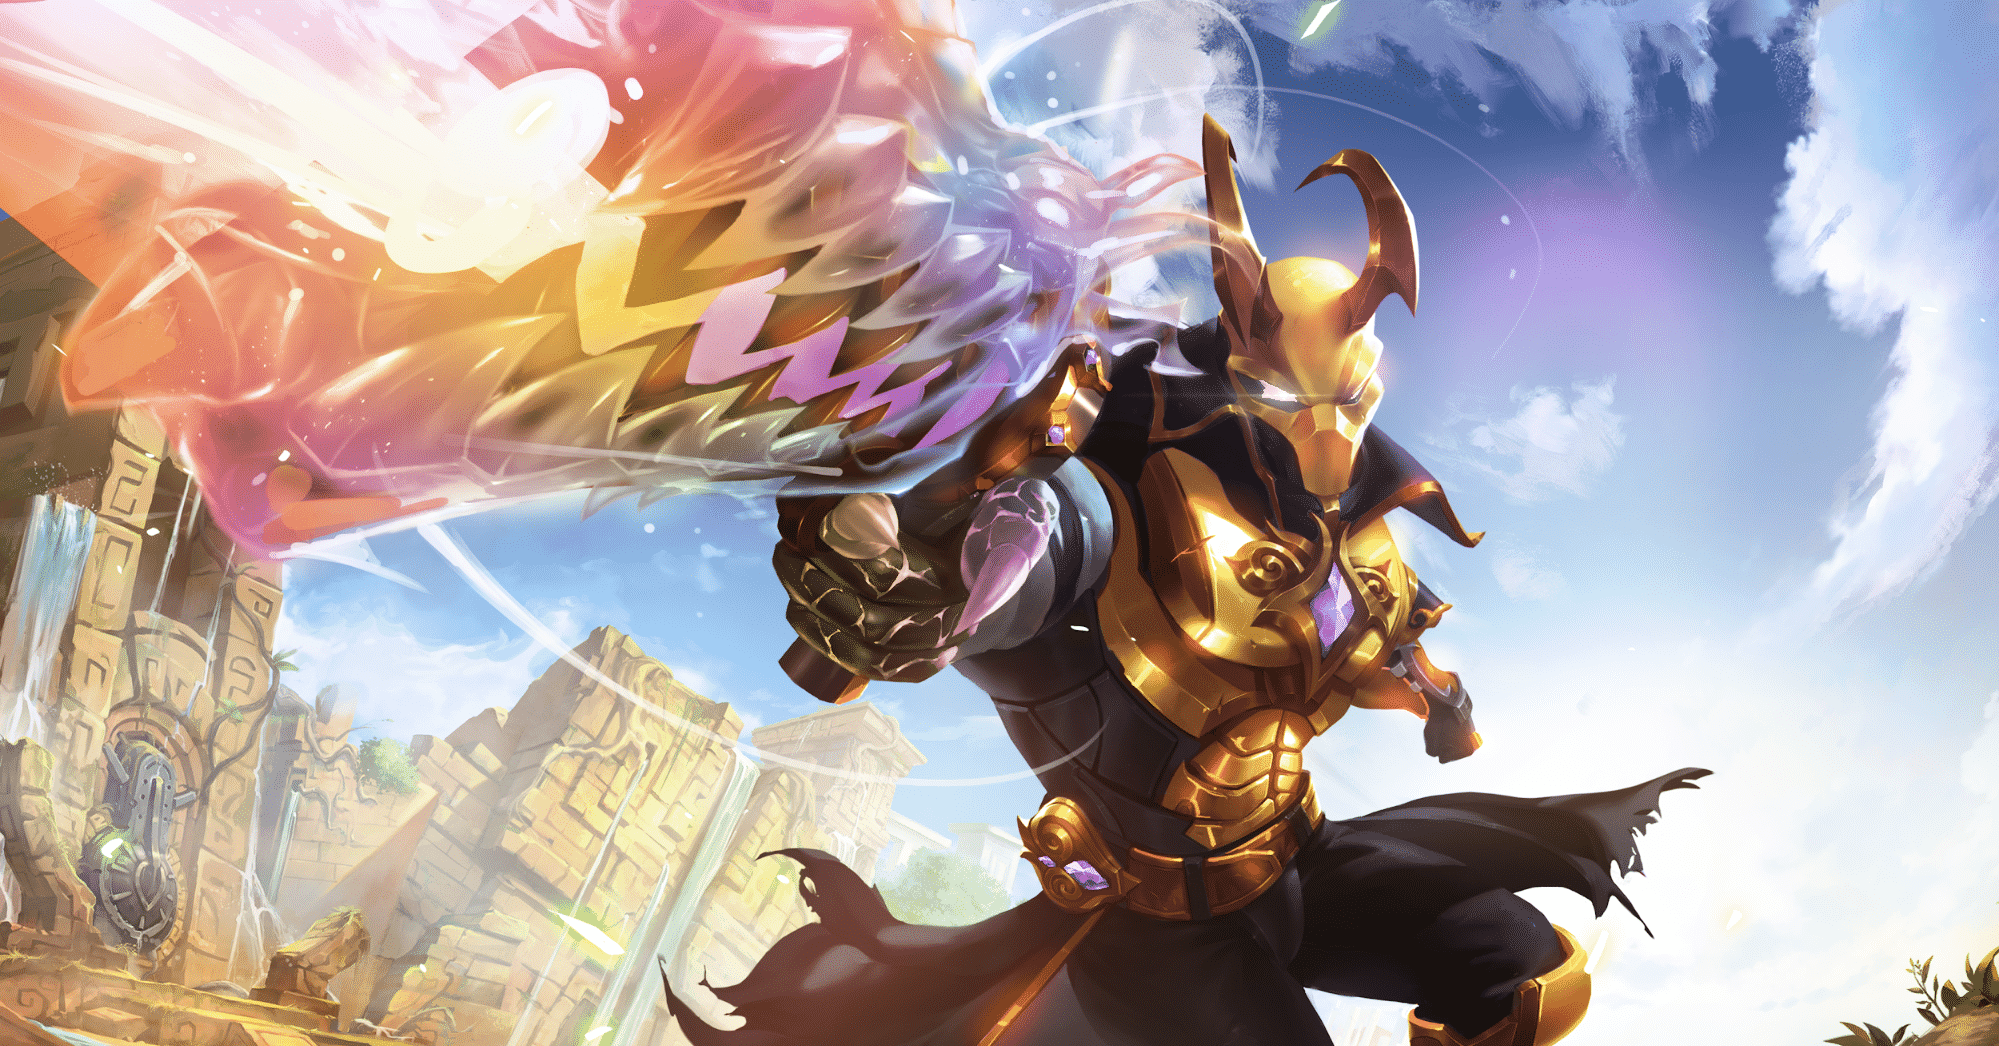 Androxus - The Godslayer, Golden Skin, Paladins (Artwork: u/itayfeder - Source: Reddit)